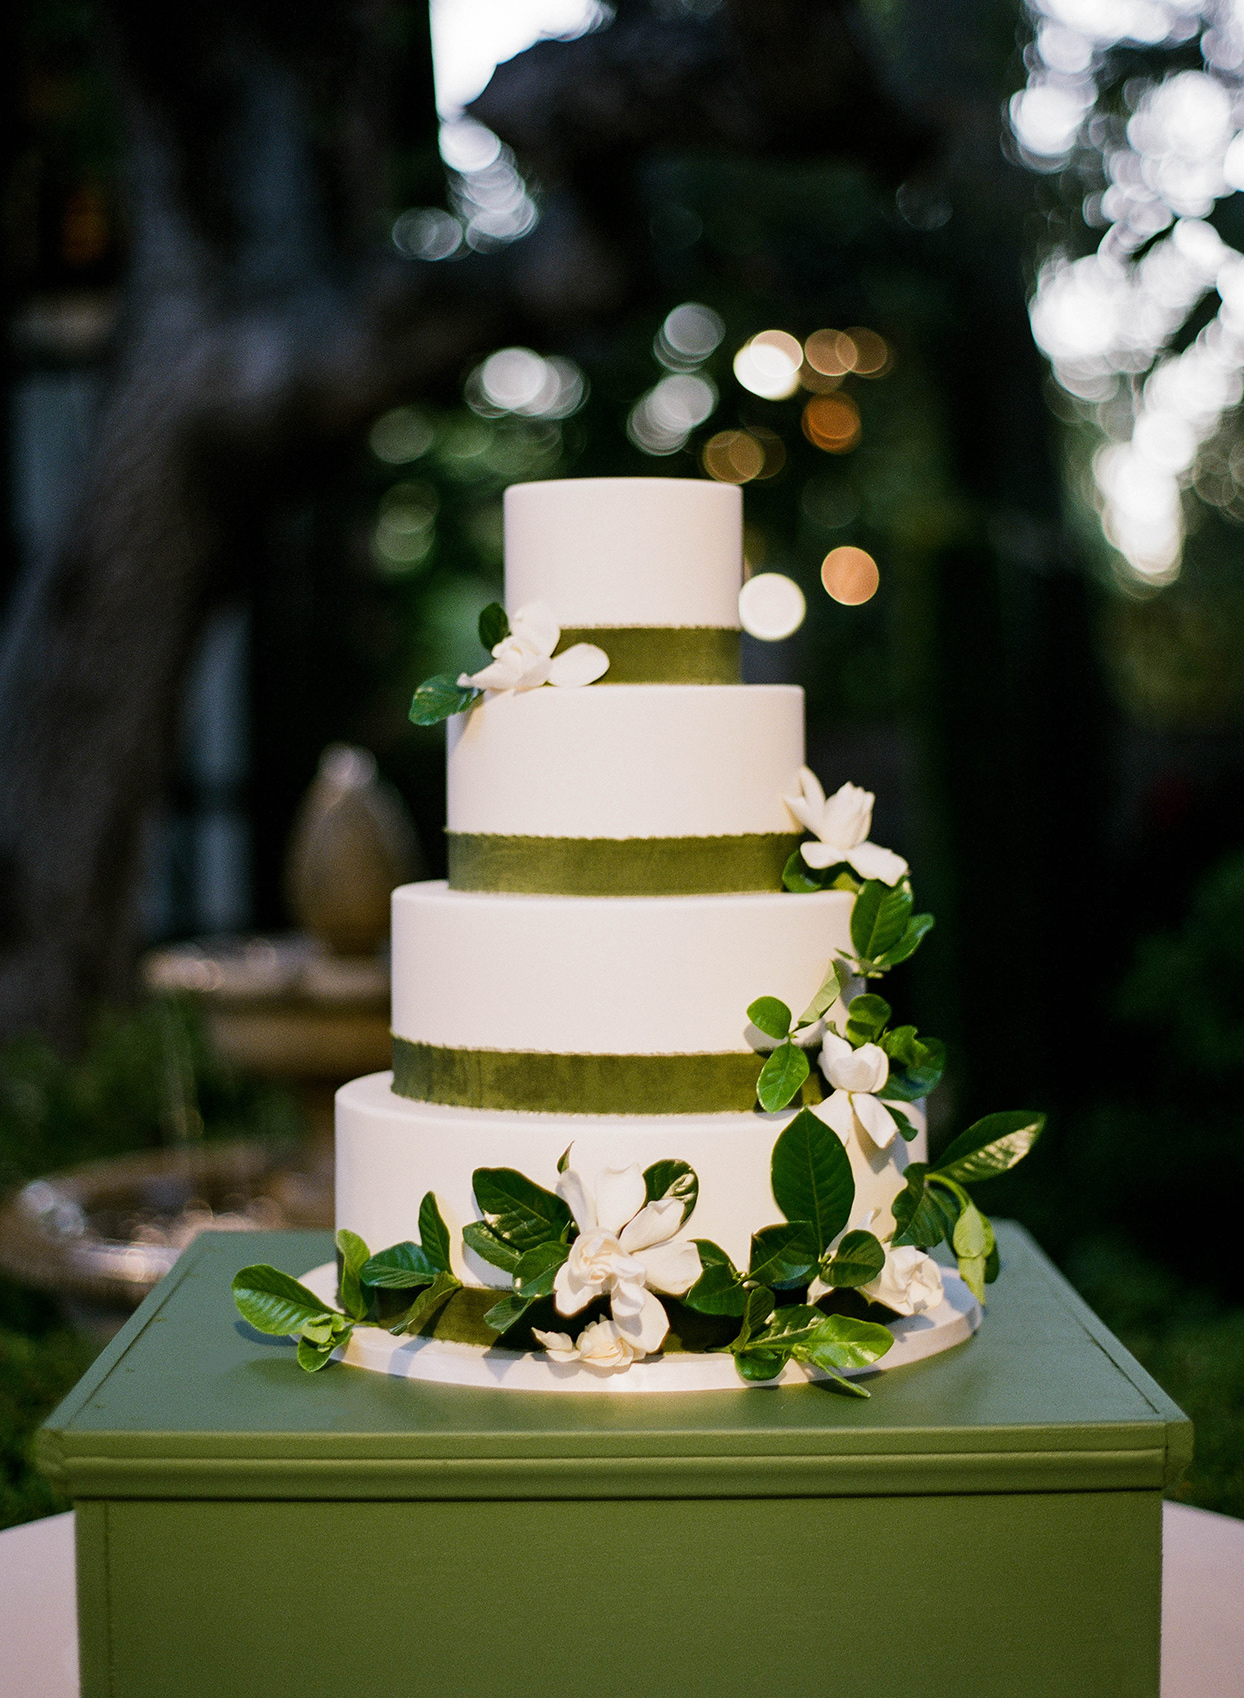 four tiered white wedding cake with green ribbons and flowers